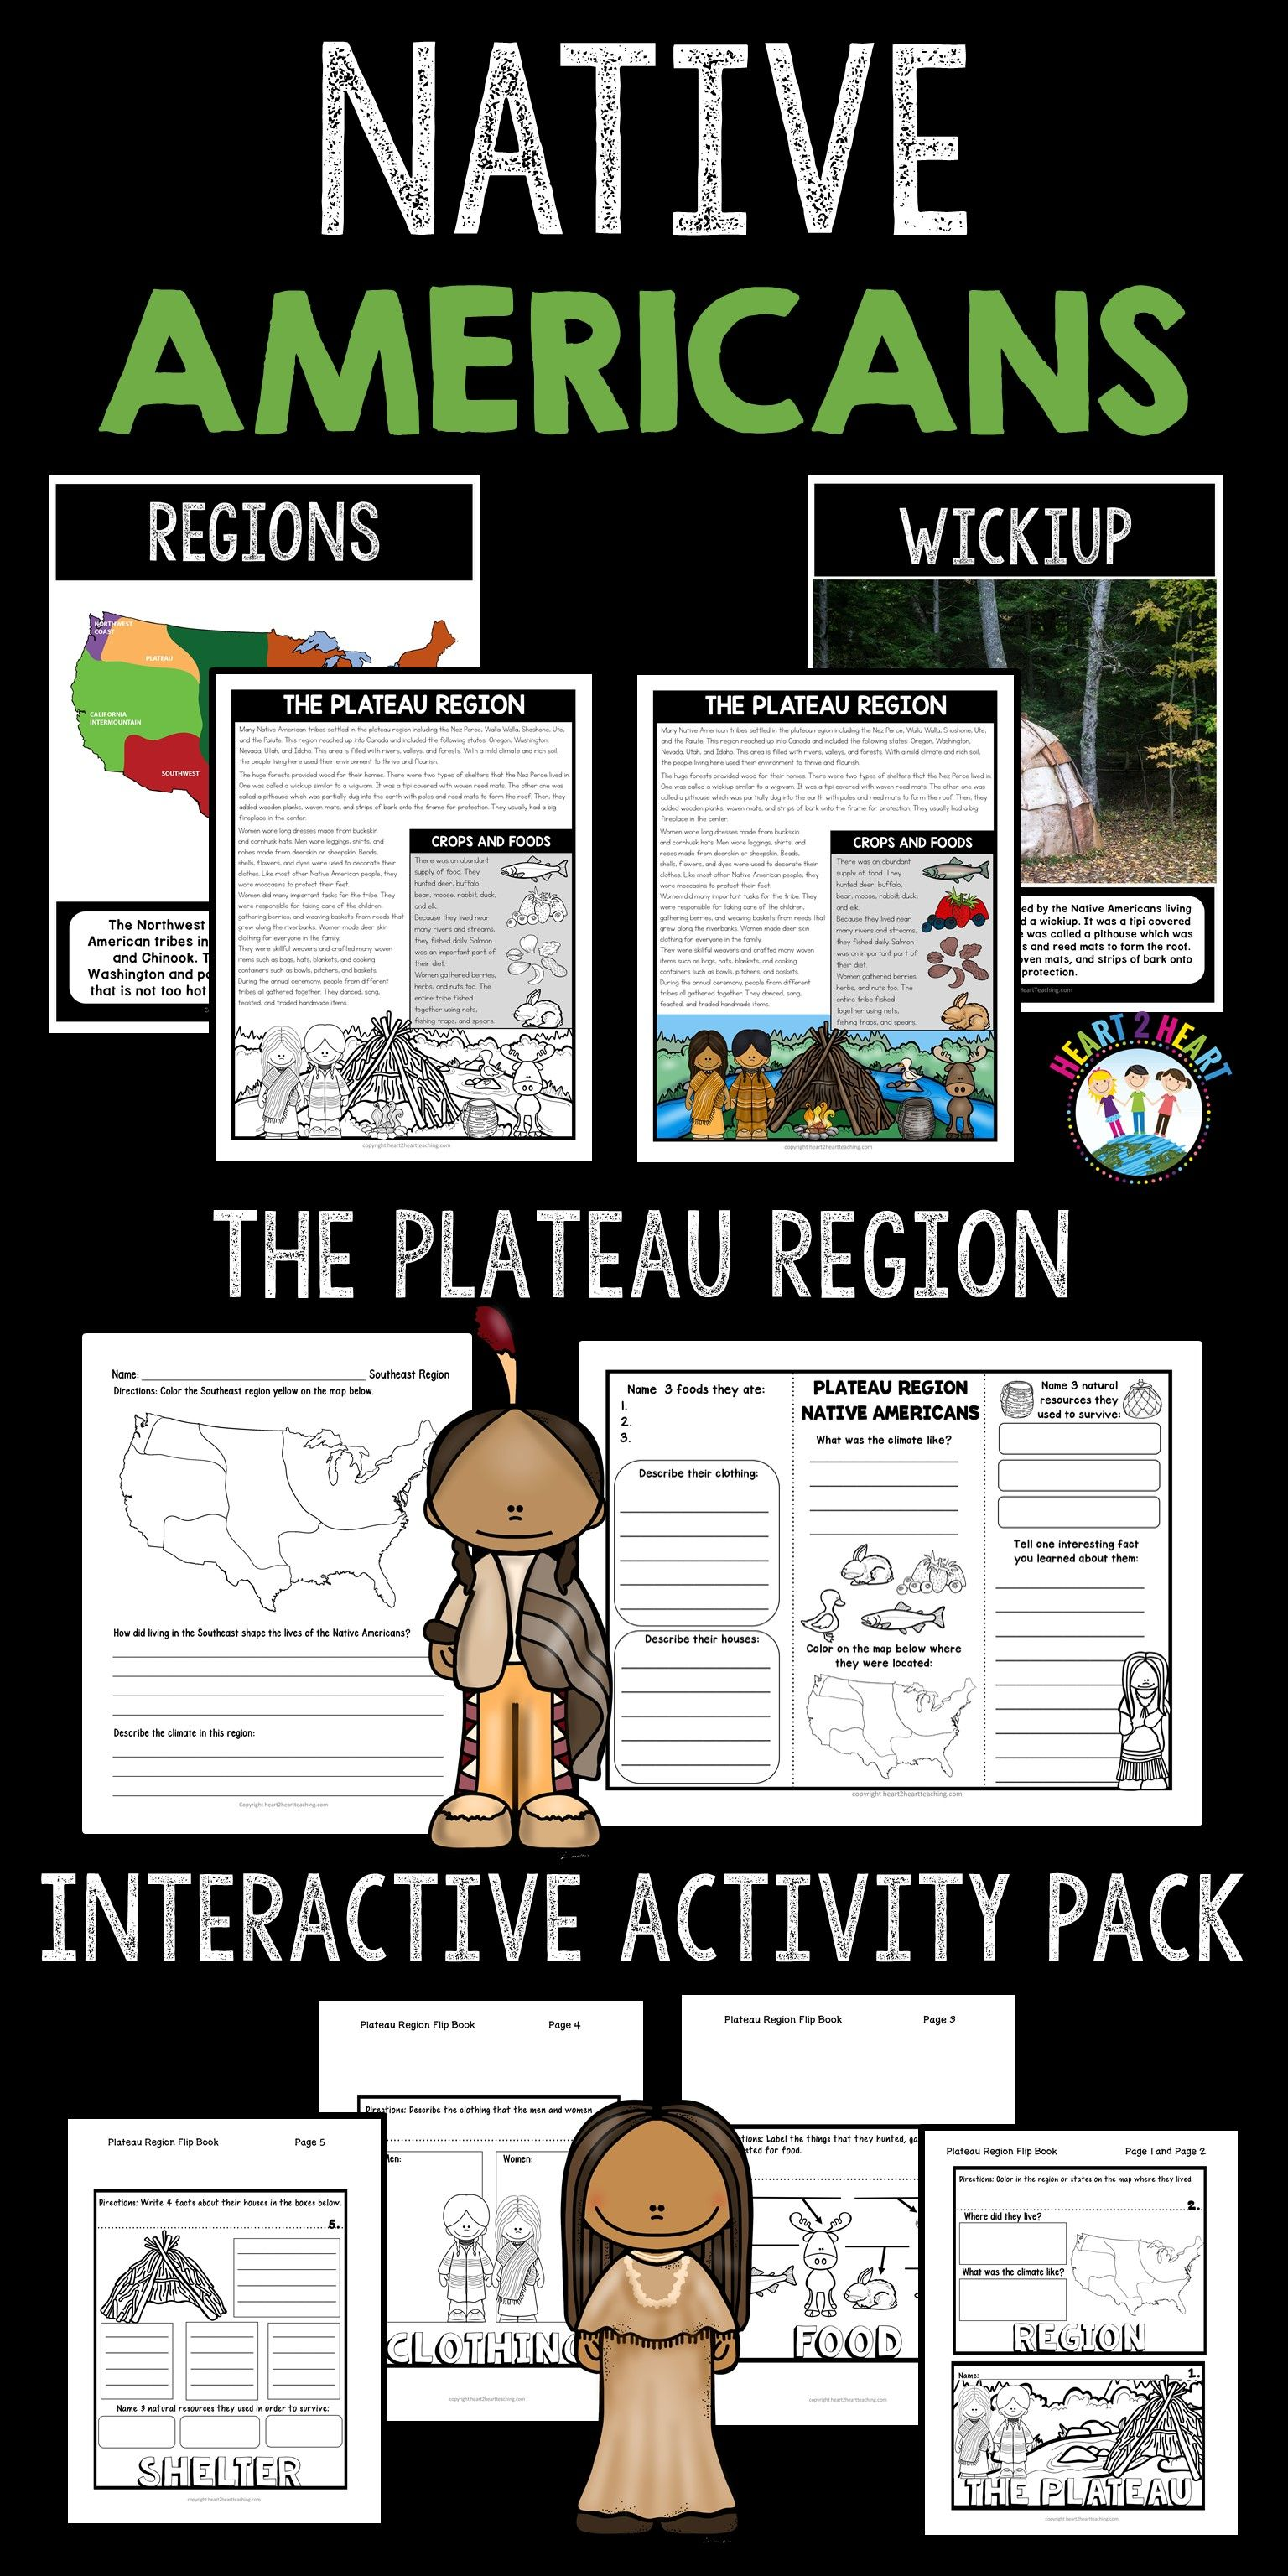 Native Americans That Lived In The Plateau Region